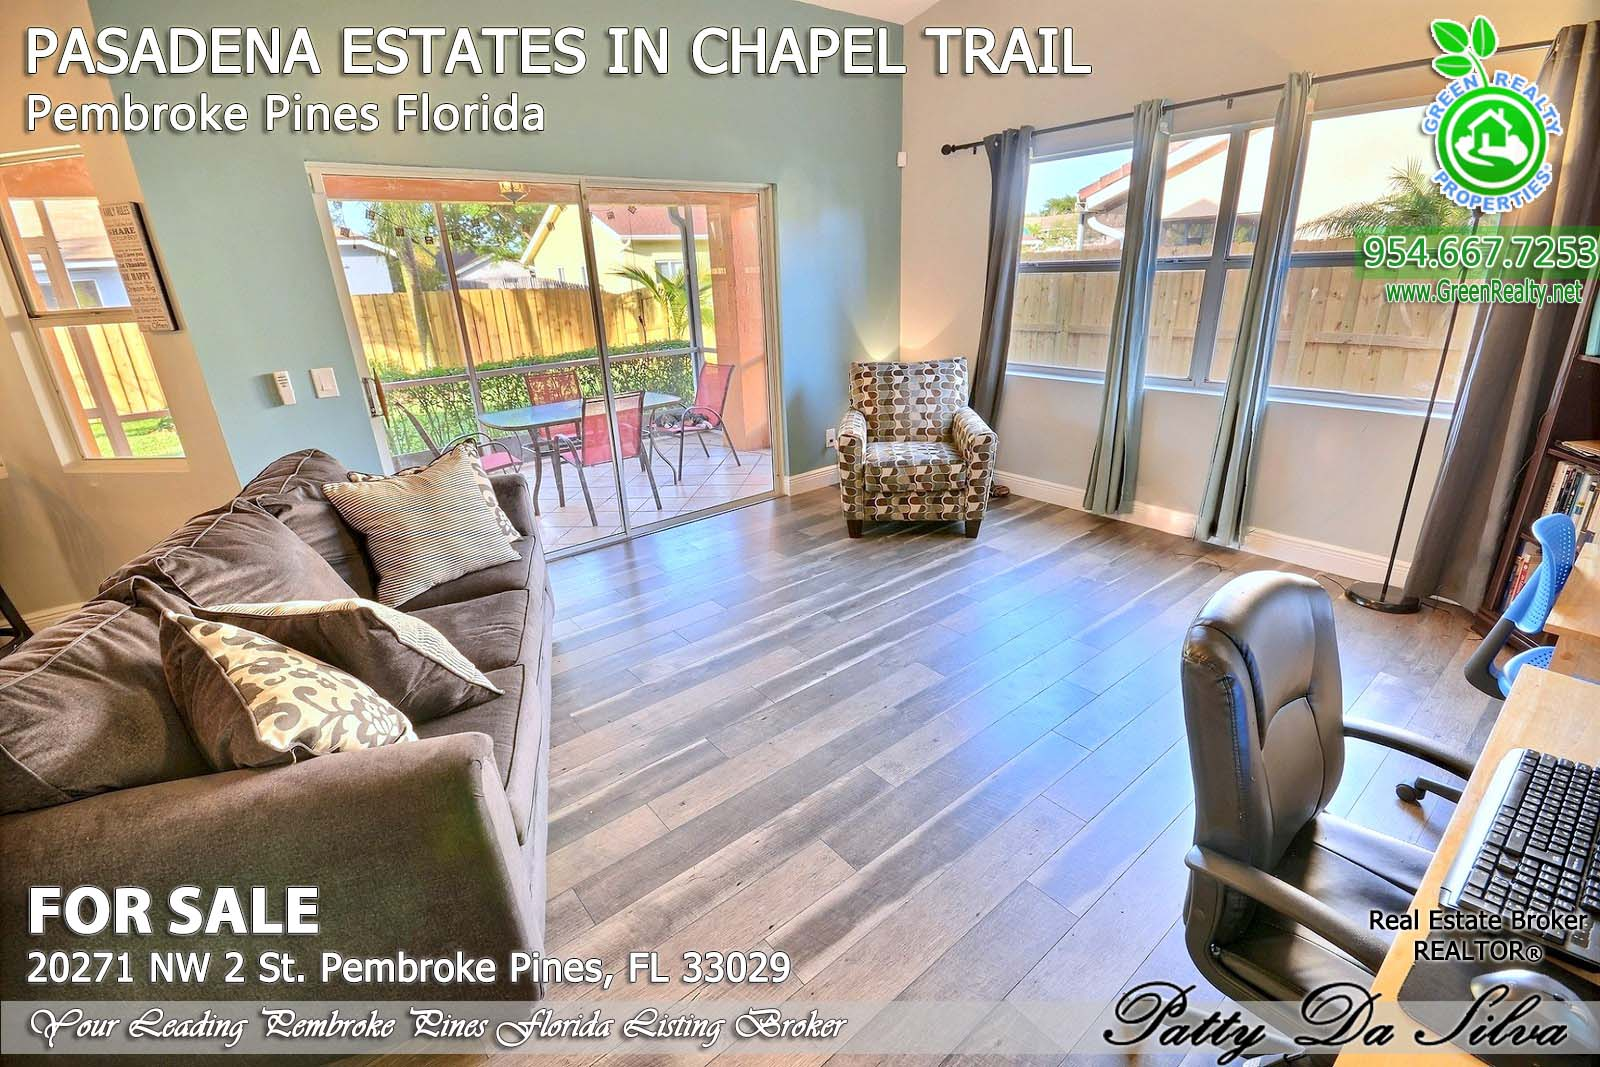 Pasadena Estates of Chapel Trail - Pembroke Pines FL (22)